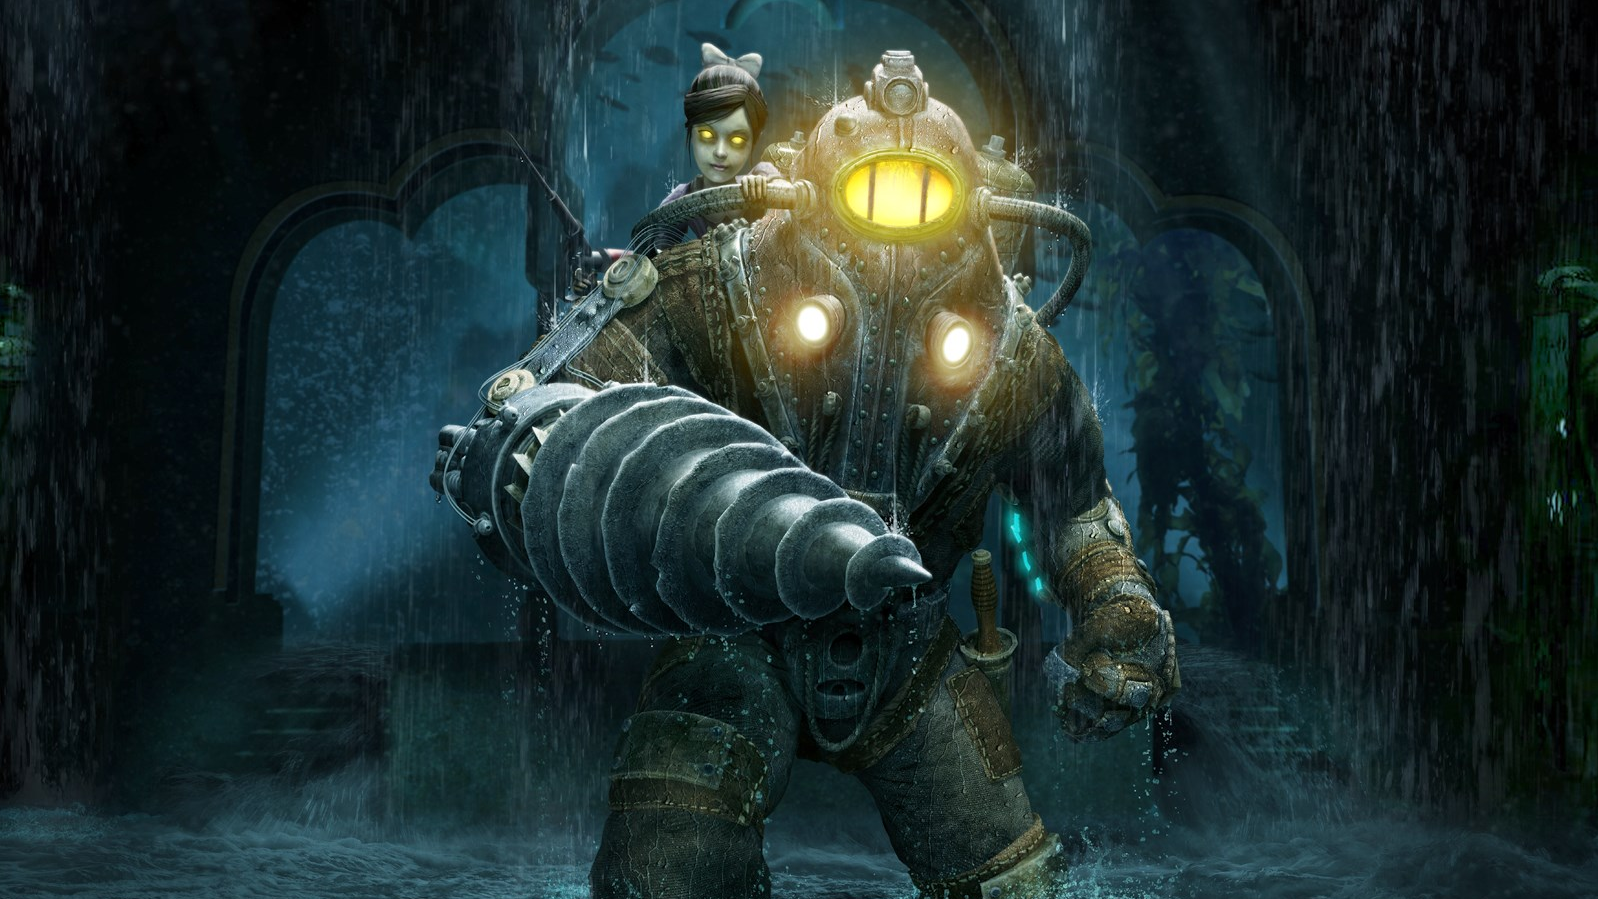 Heads Up: You'll Need To Manage The Bioshock Collection's Limited Save Space